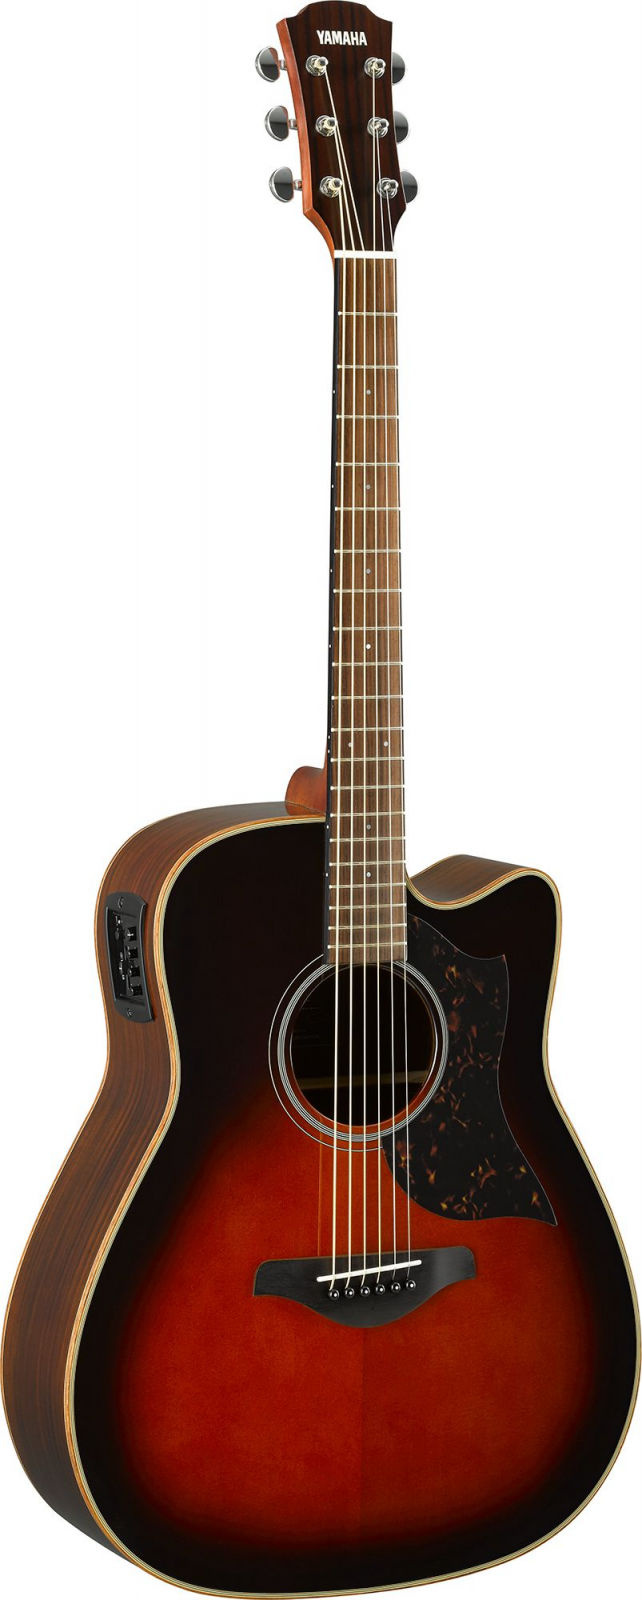 YAMAHA A1R TBS ACOUSTIC ELECTRIC GUITAR ROSEWOOD BACK/SIDES SPRUCE TOP TOBACCO BROWN SUNBURST